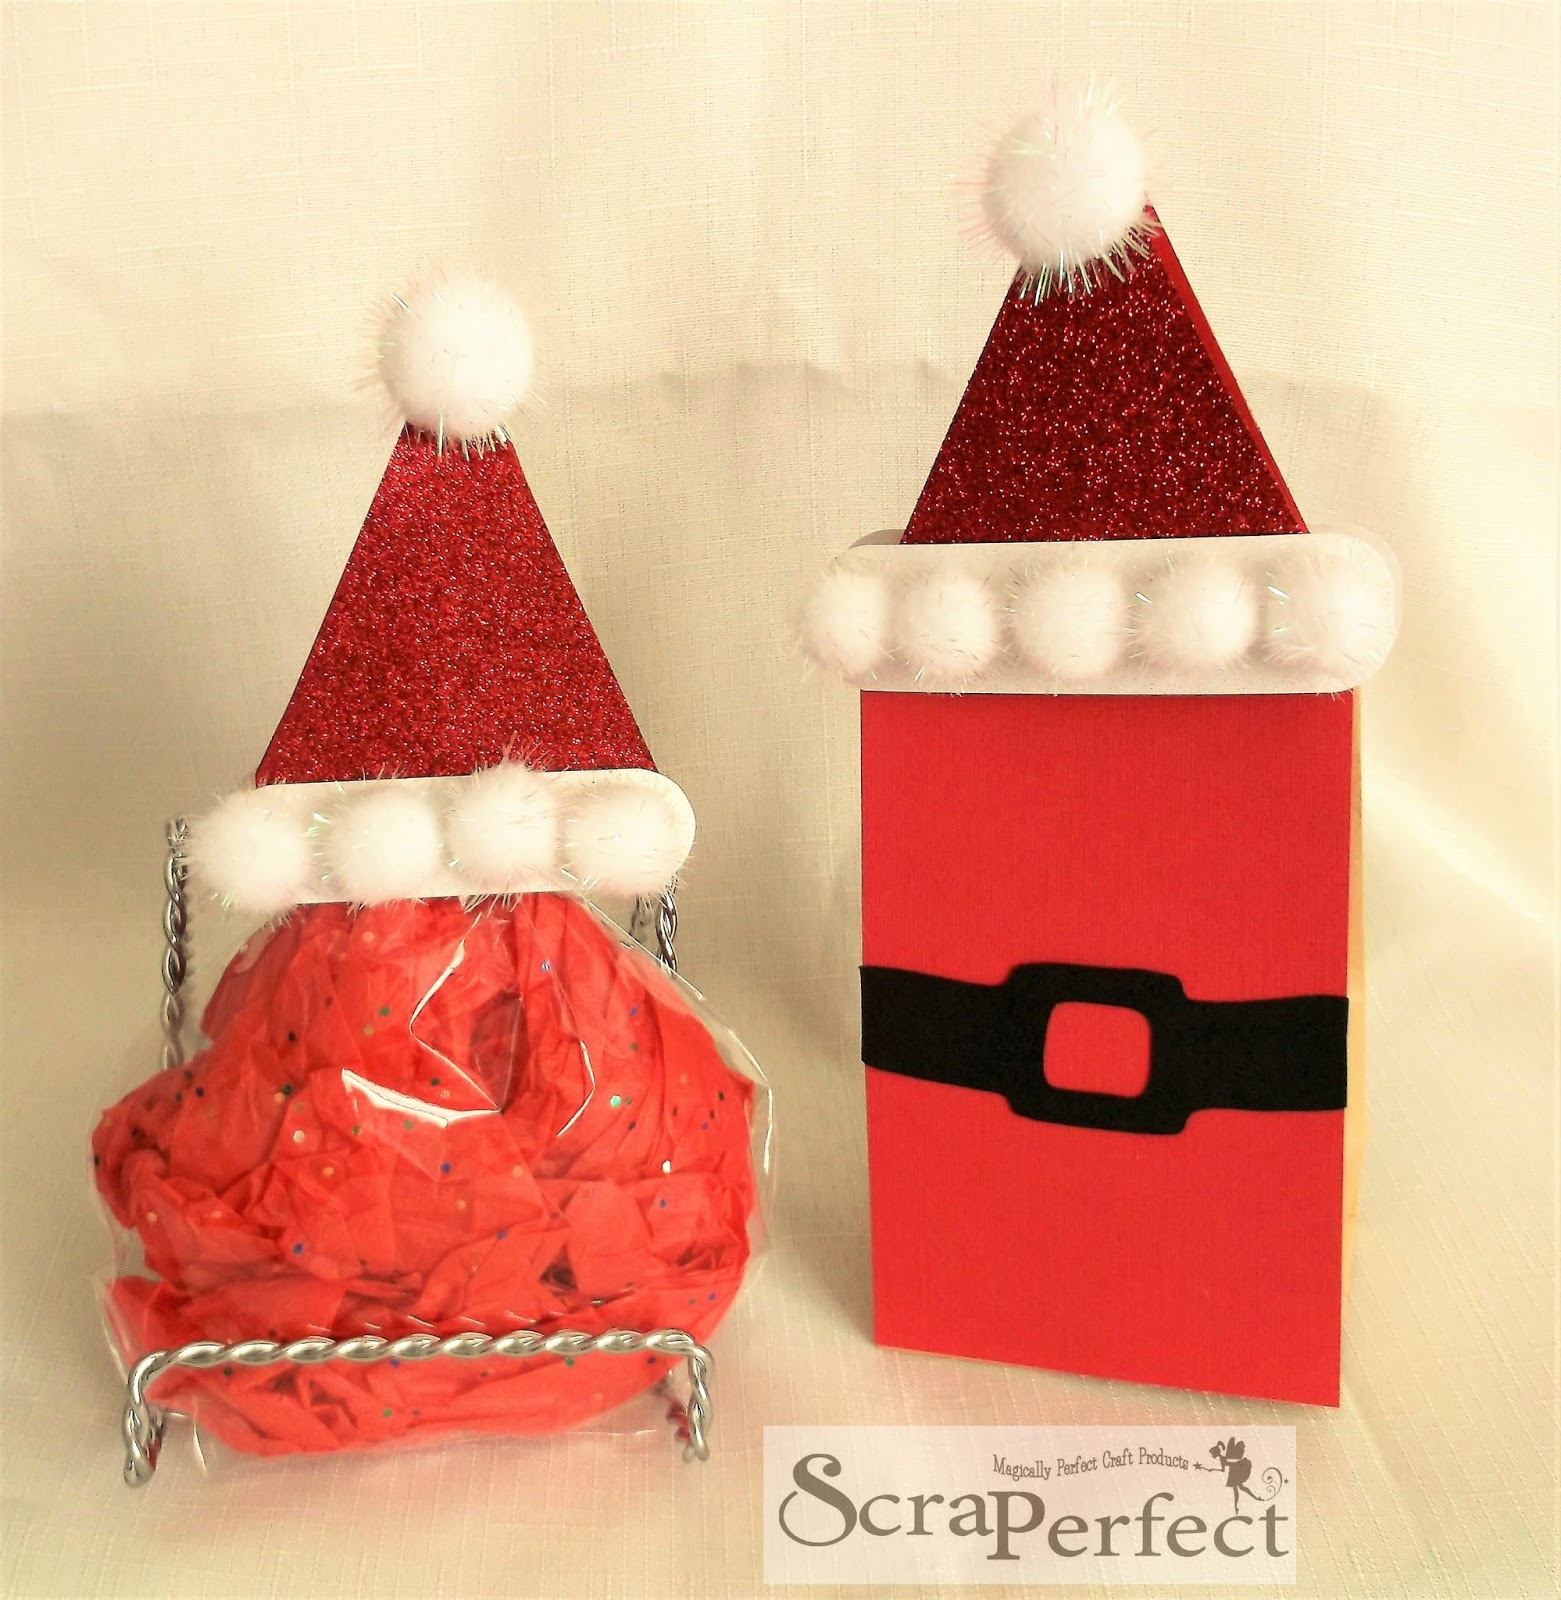 Scraperfect christmas treat bags with